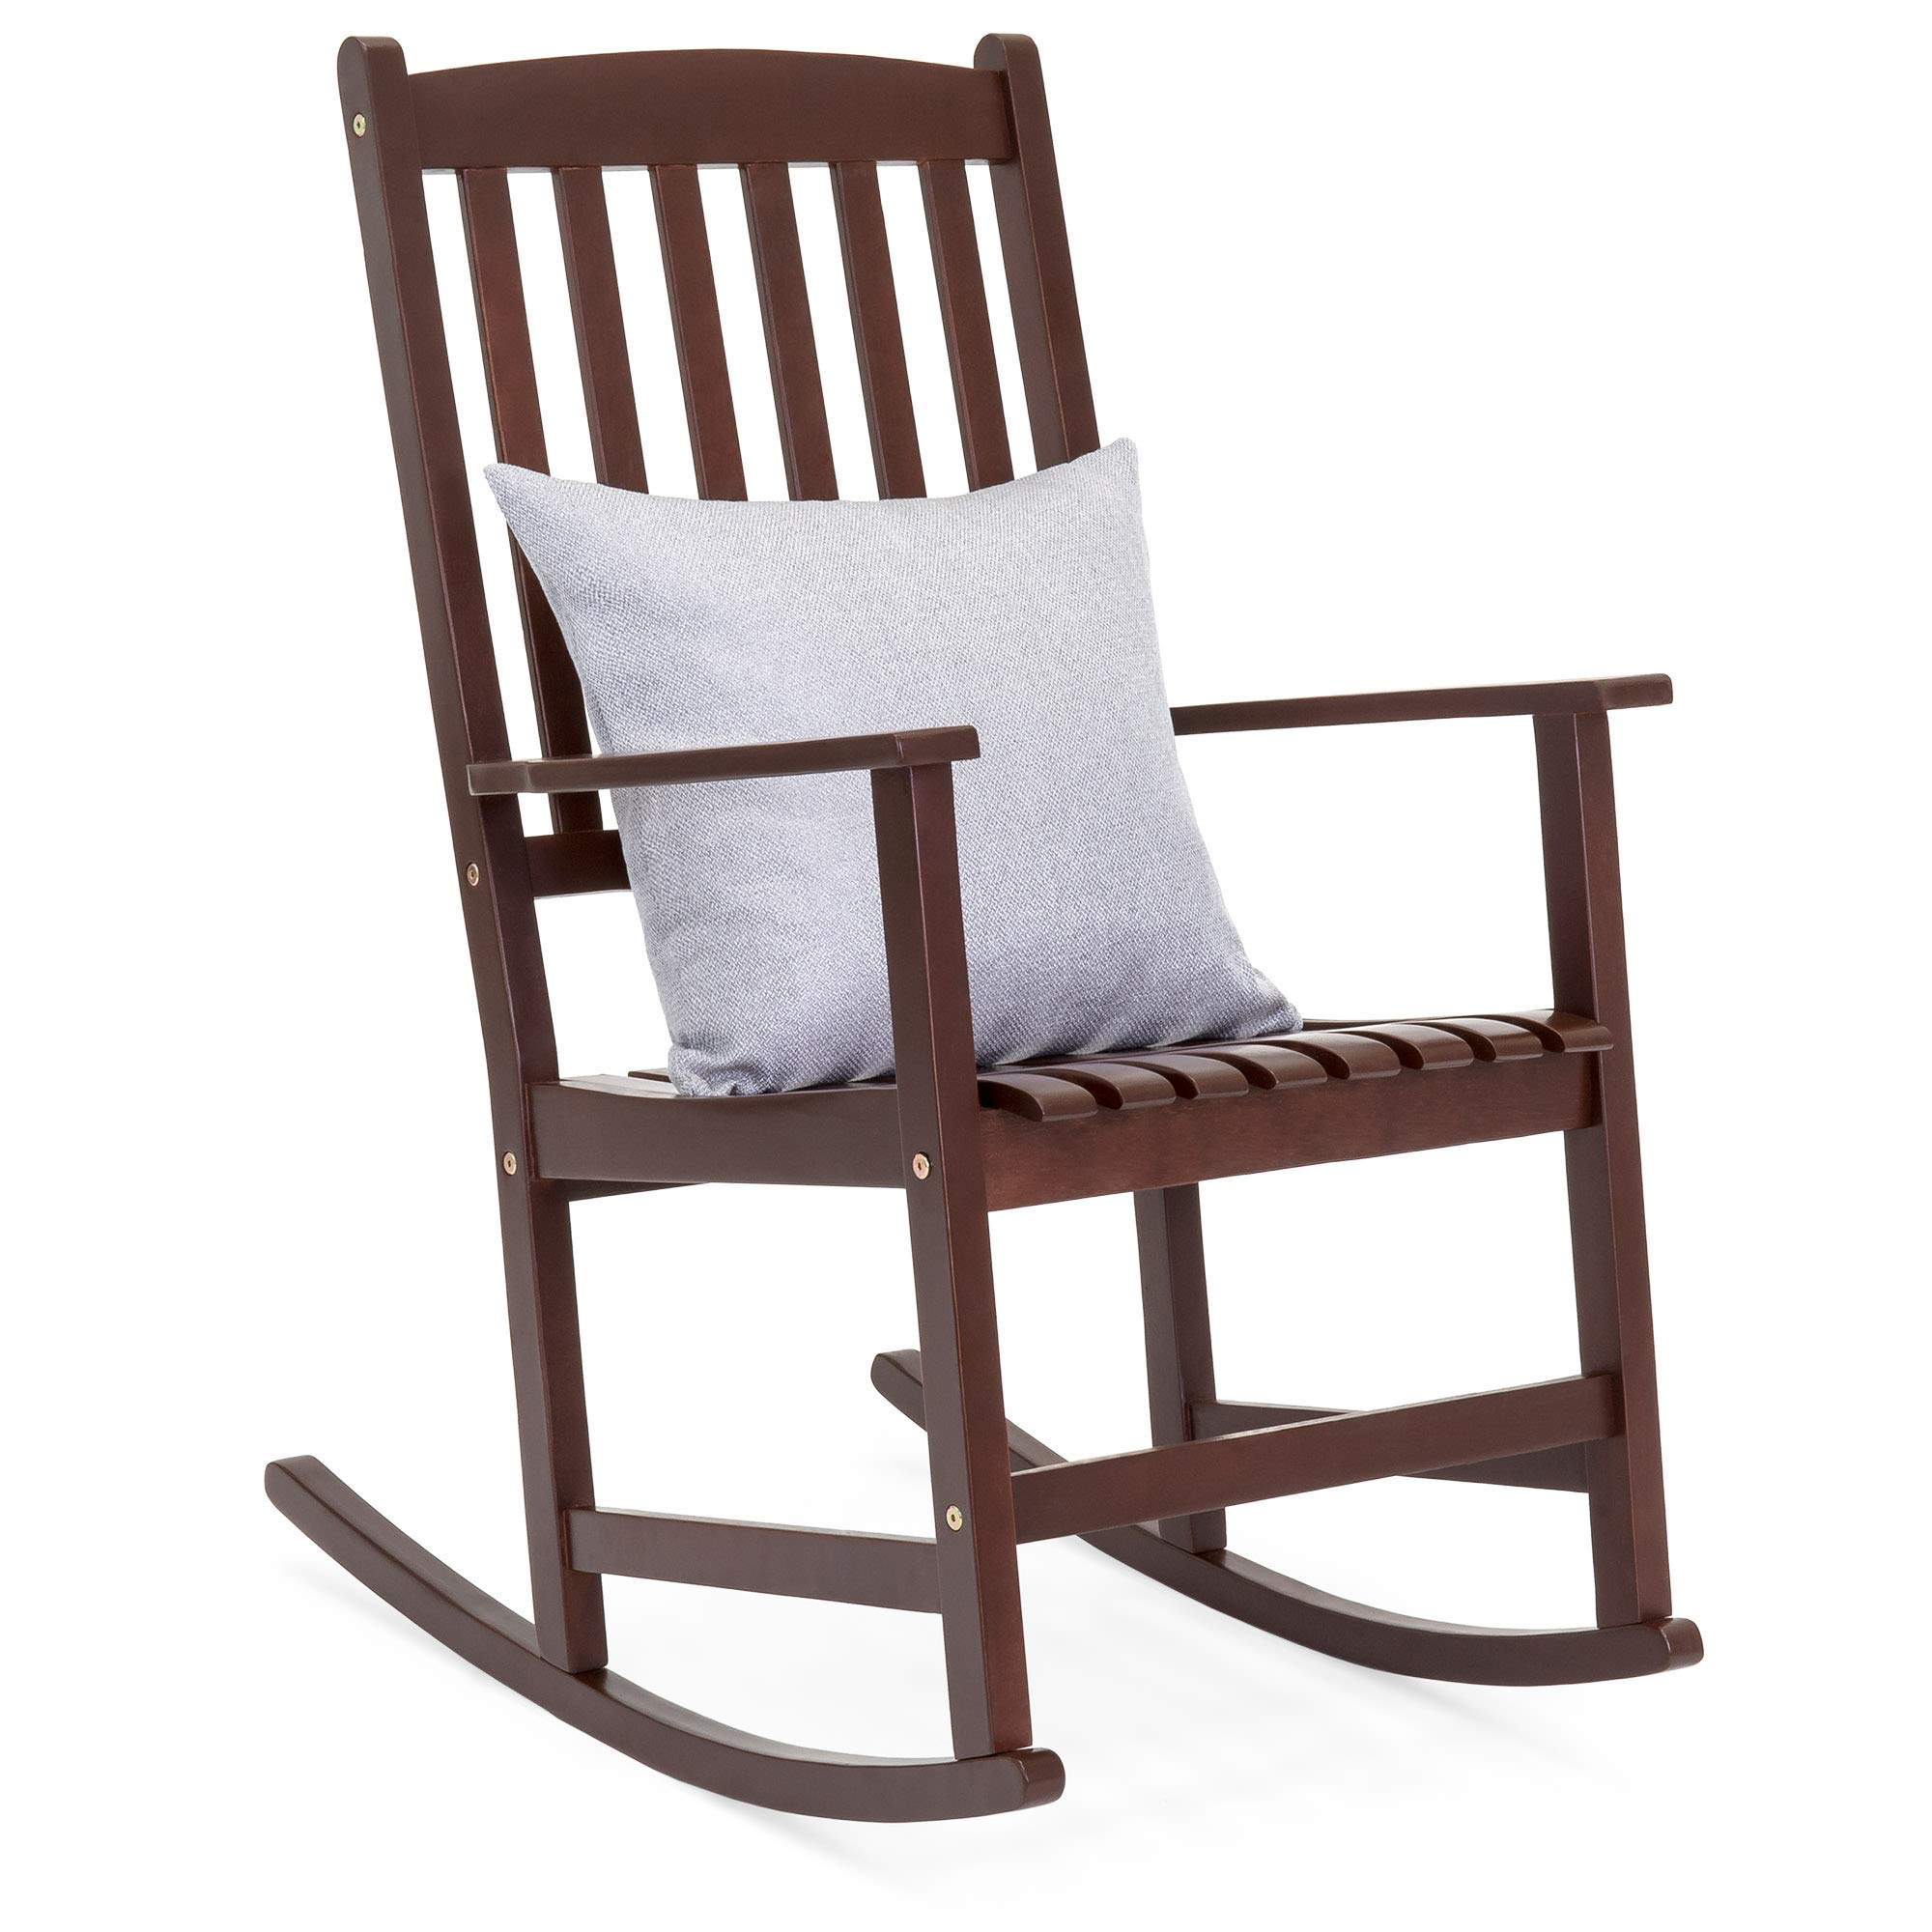 Best Choice Products Indoor Outdoor Traditional Wooden Rocking Chair Furniture with Slatted Seat and Backrest, Brown